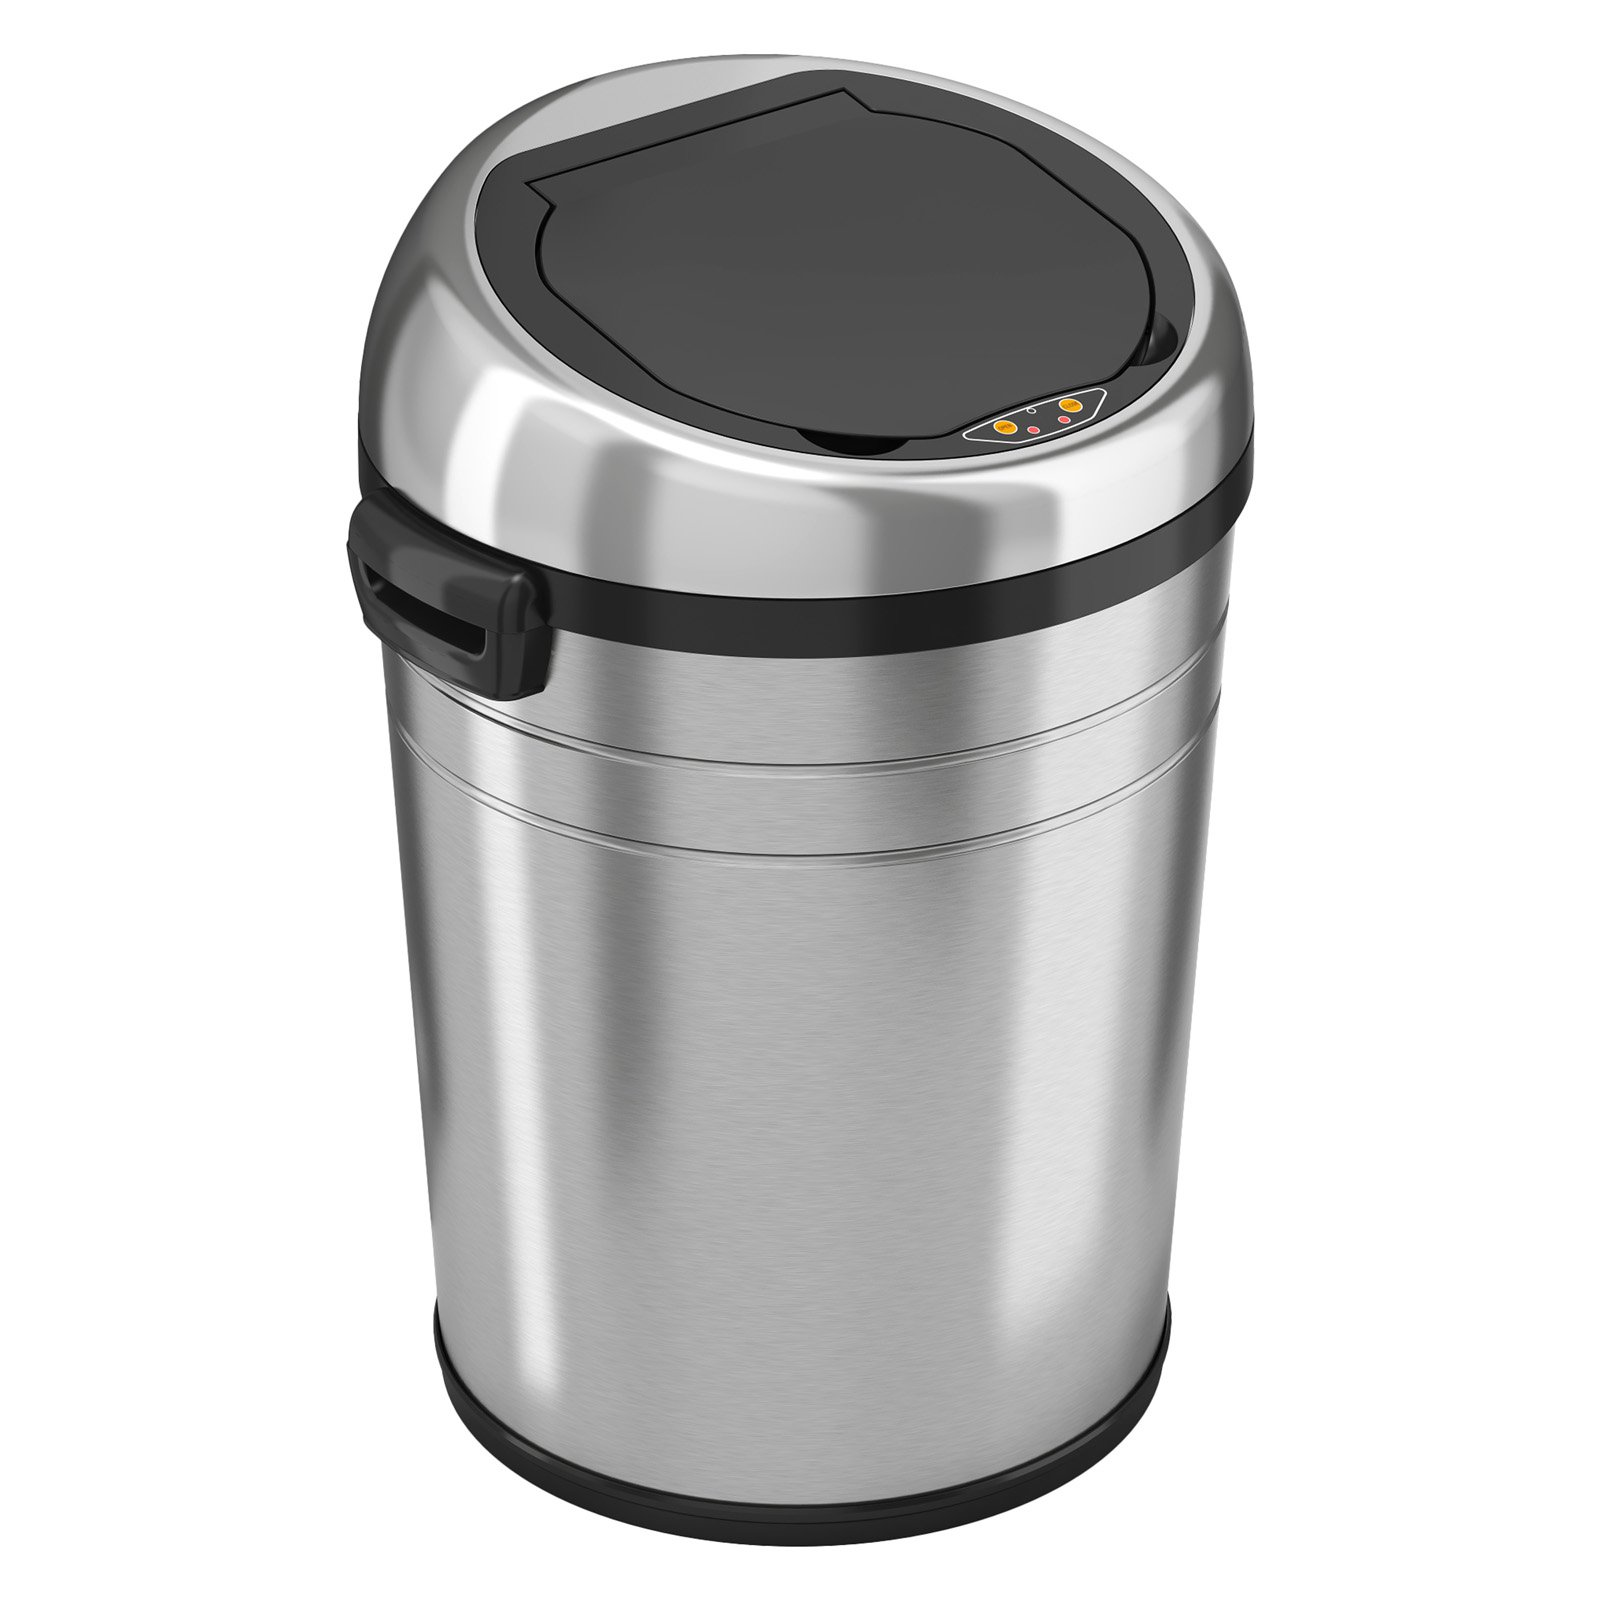 Small White Trash Can With Lid Itouchless It18rc Trashcan Nx Stainless Steel Trash Can